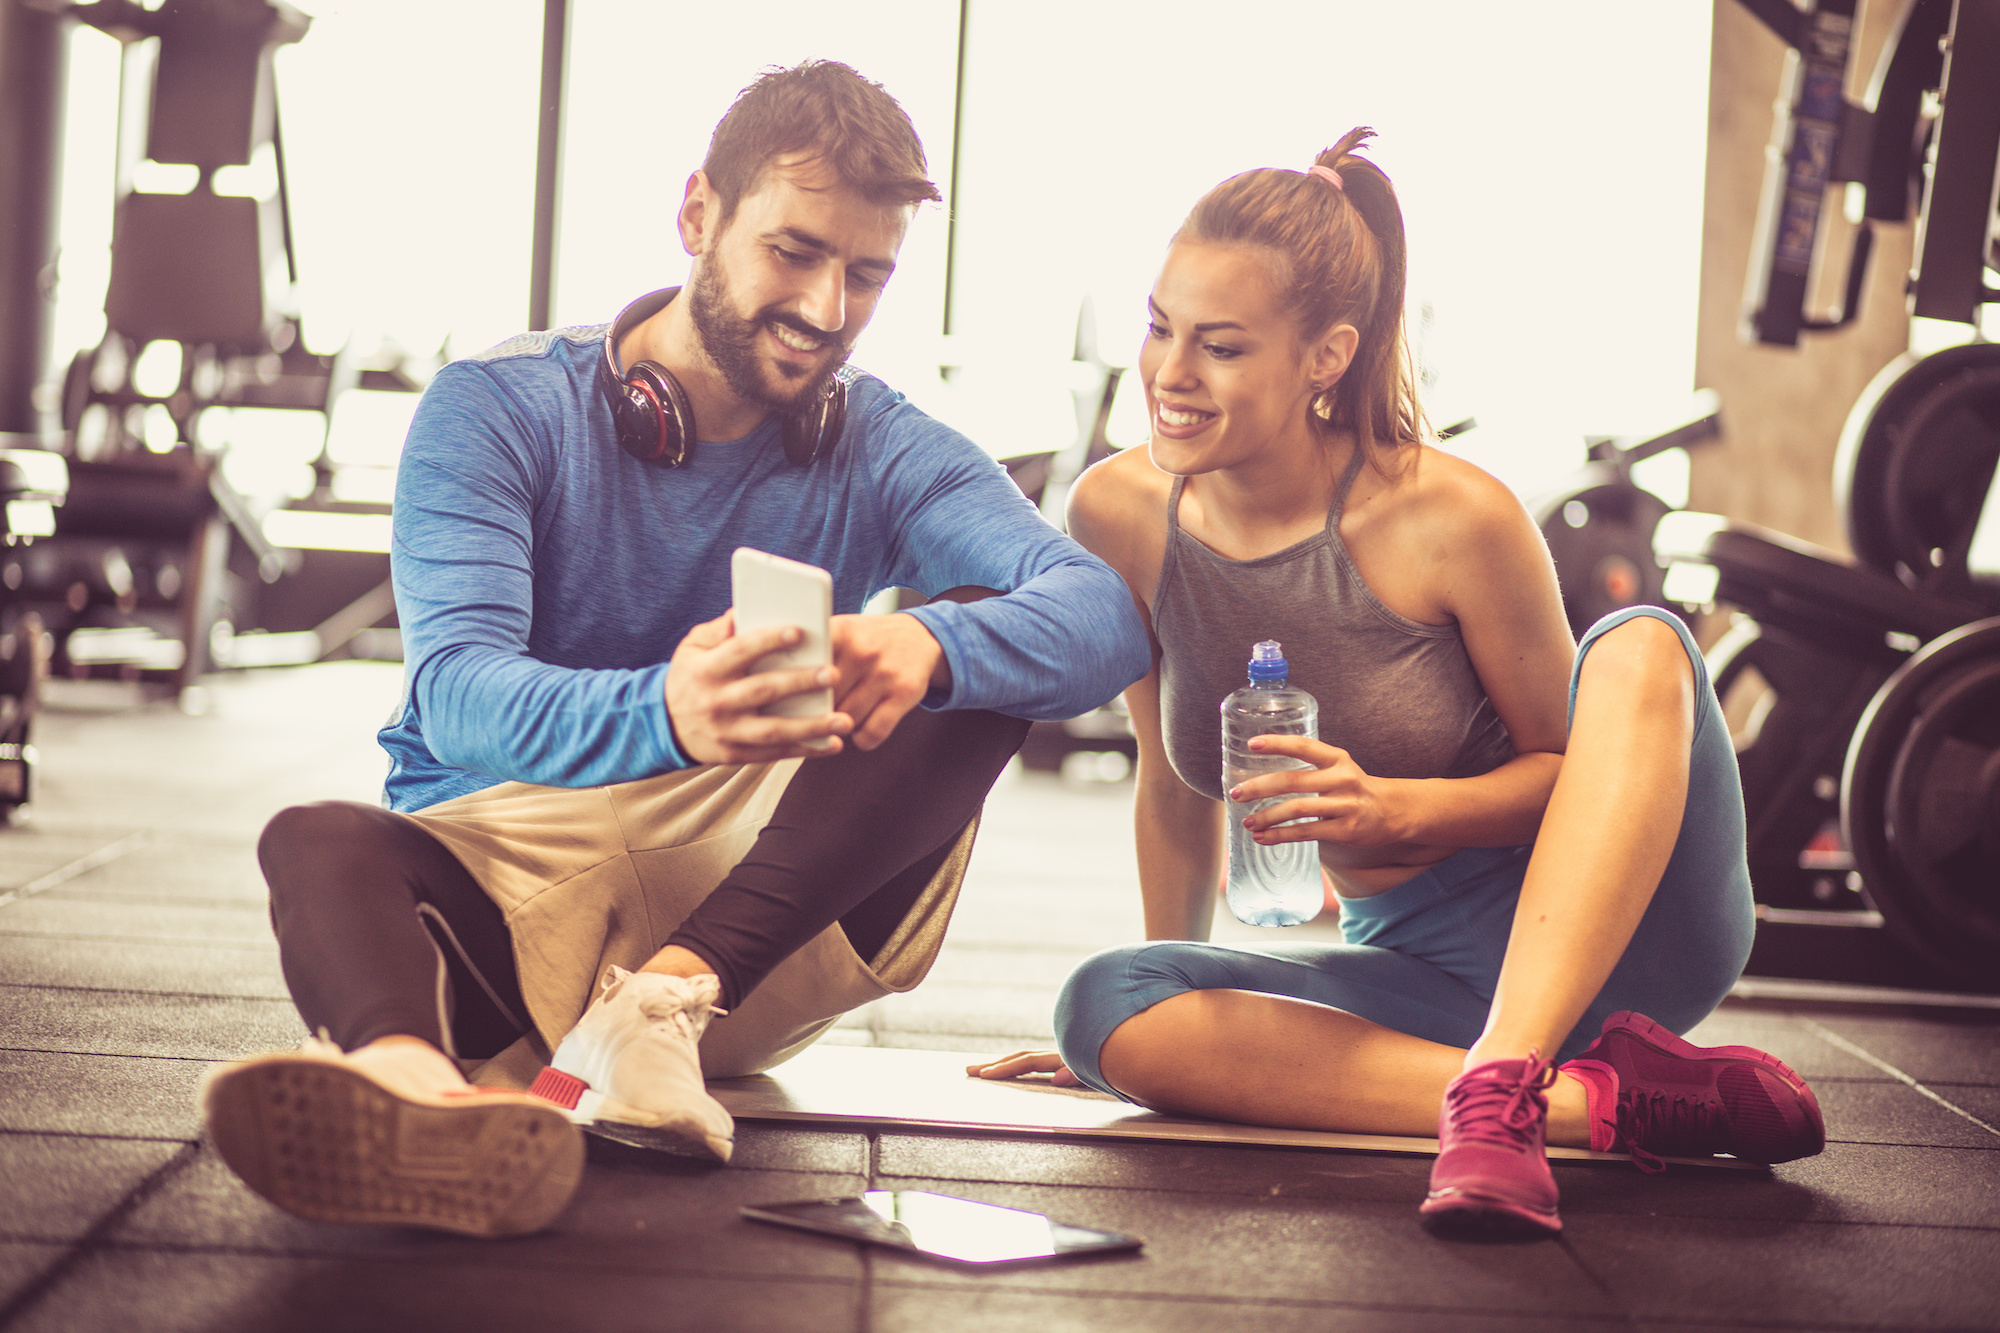 Personal trainer with young sports girl sitting on floor and having conversation after exercise. Using mobile phone.